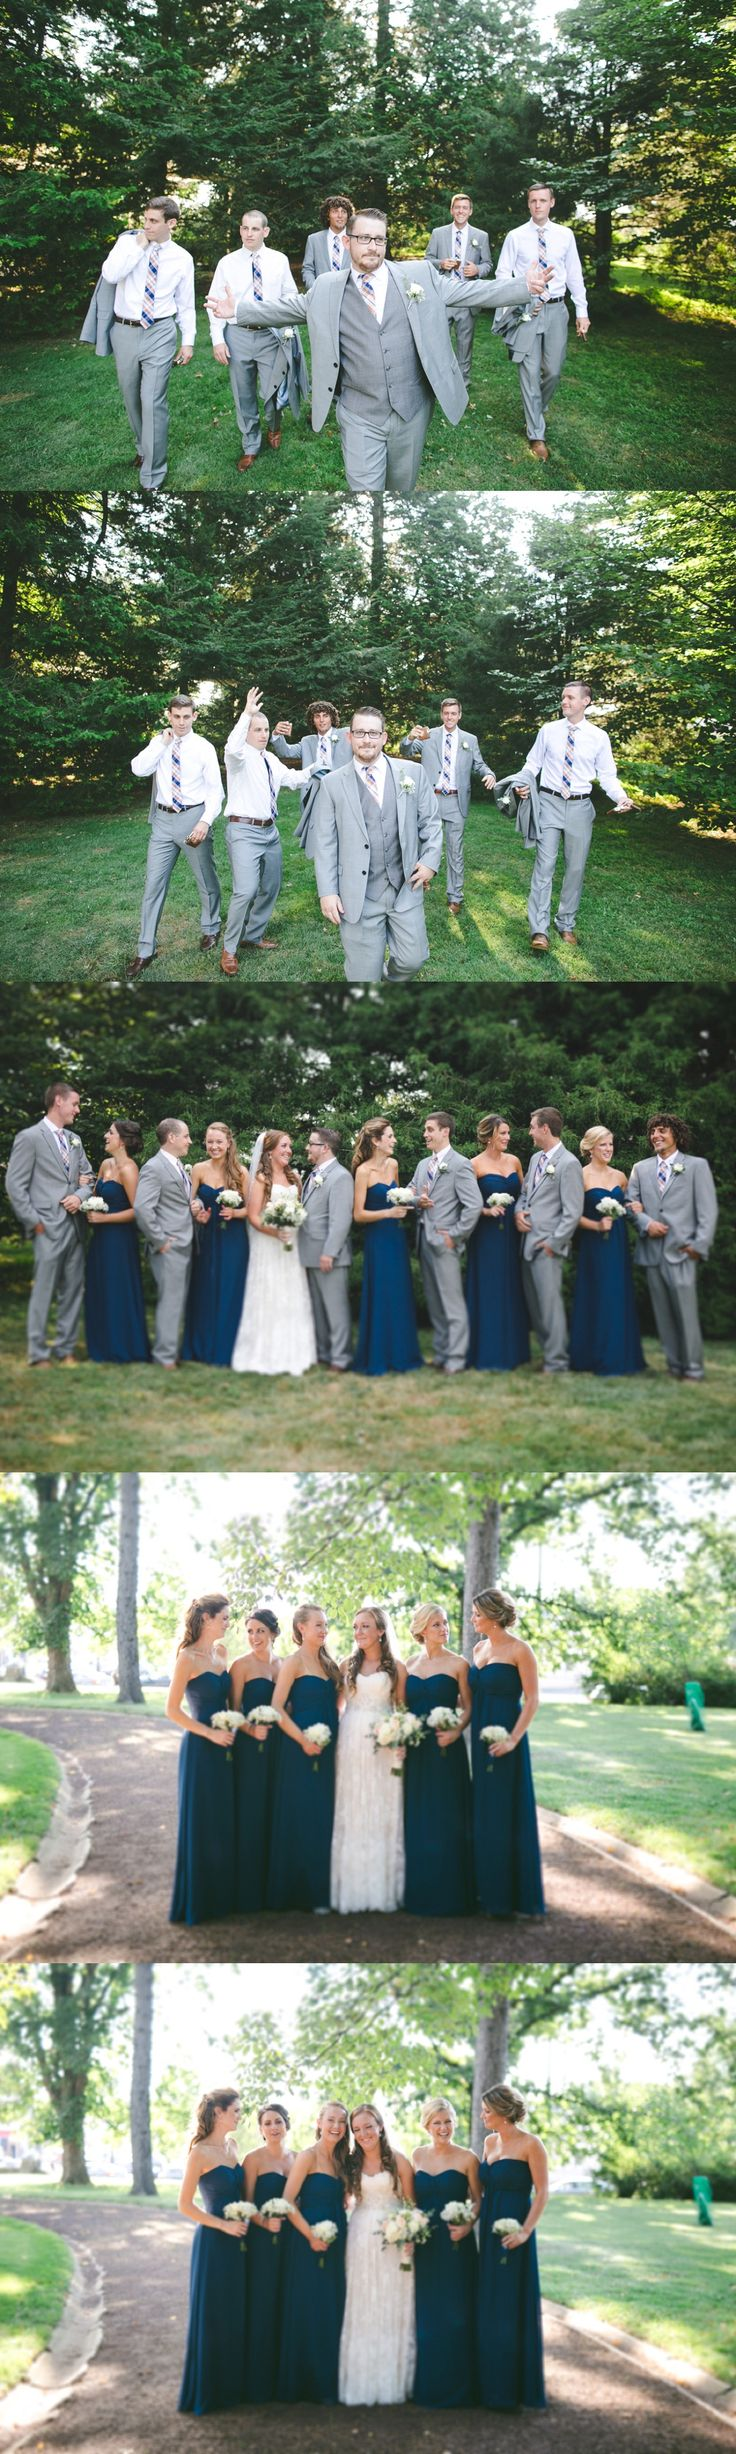 Navy Marine Blue Bridesmaid Dresses with Grey Groomsmen Suits | Bridal Party Portraits